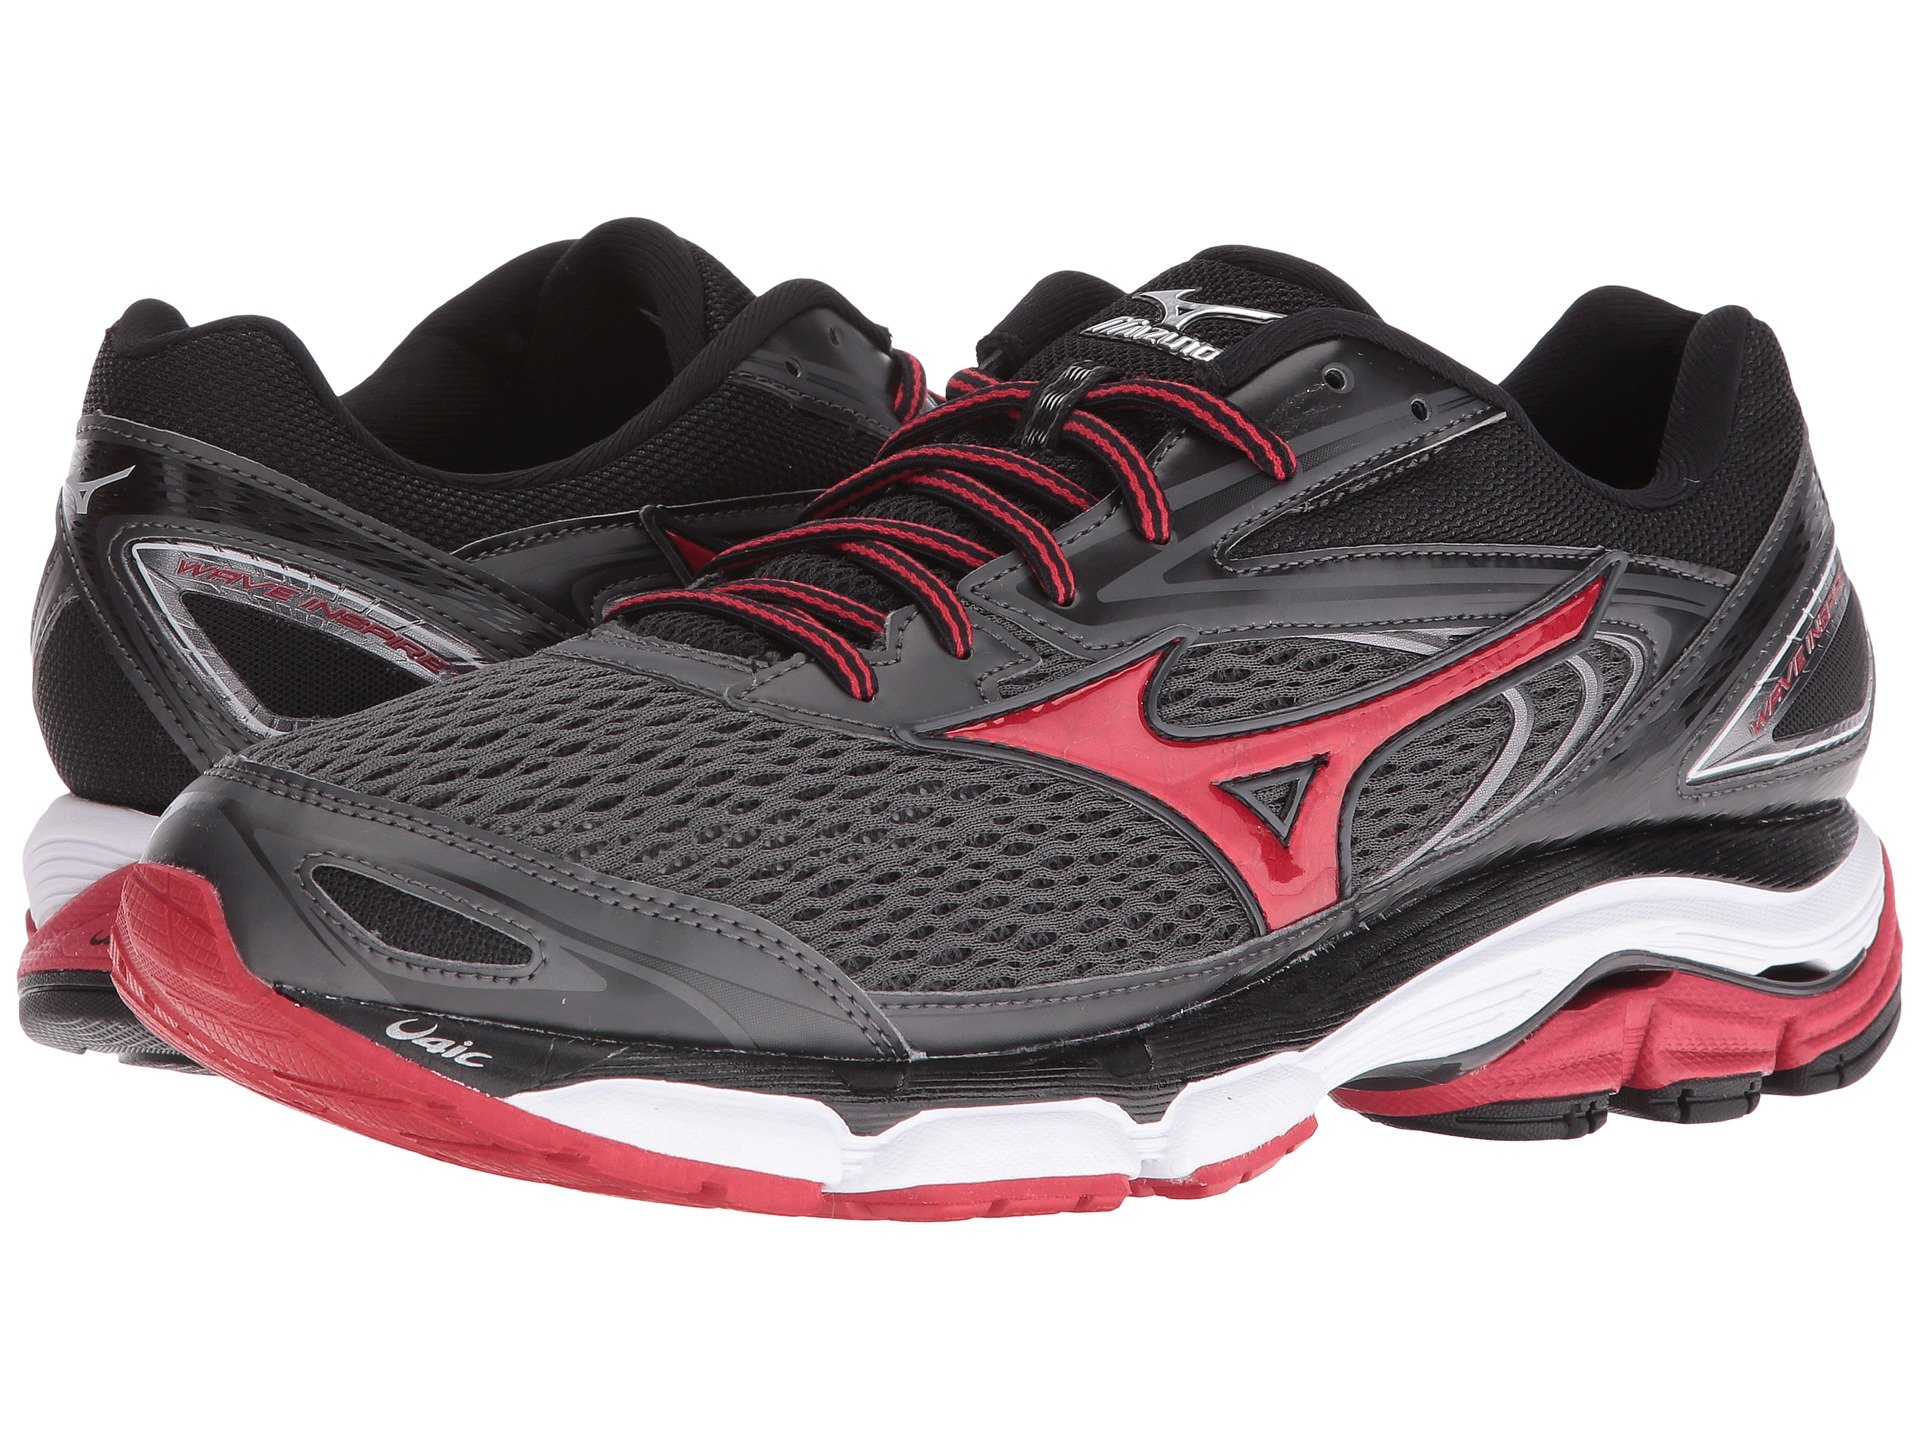 b99a26110b03 mizuno wave inspire 5 mens on sale > OFF48% Discounts